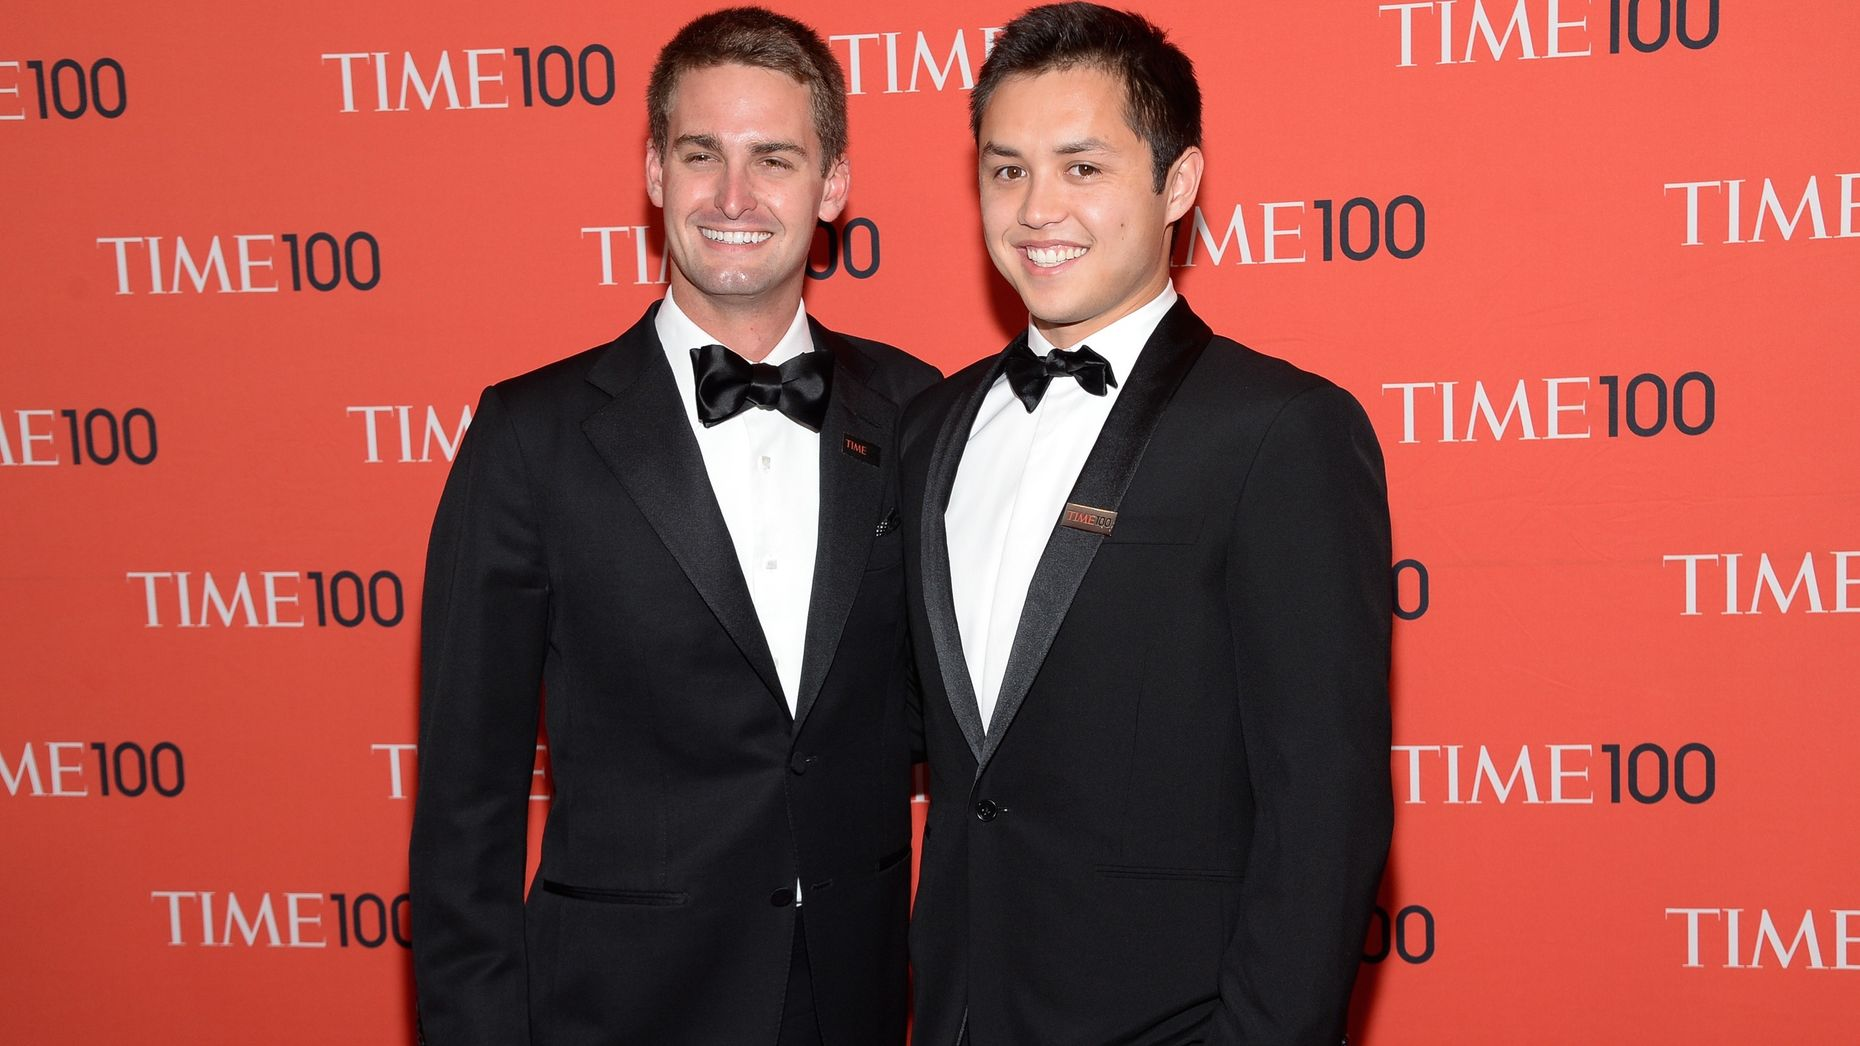 Snapchat CEO and co-founder Evan Spiegel, left, with co-founder and CTO Bobby Murphy. Photo by AP.